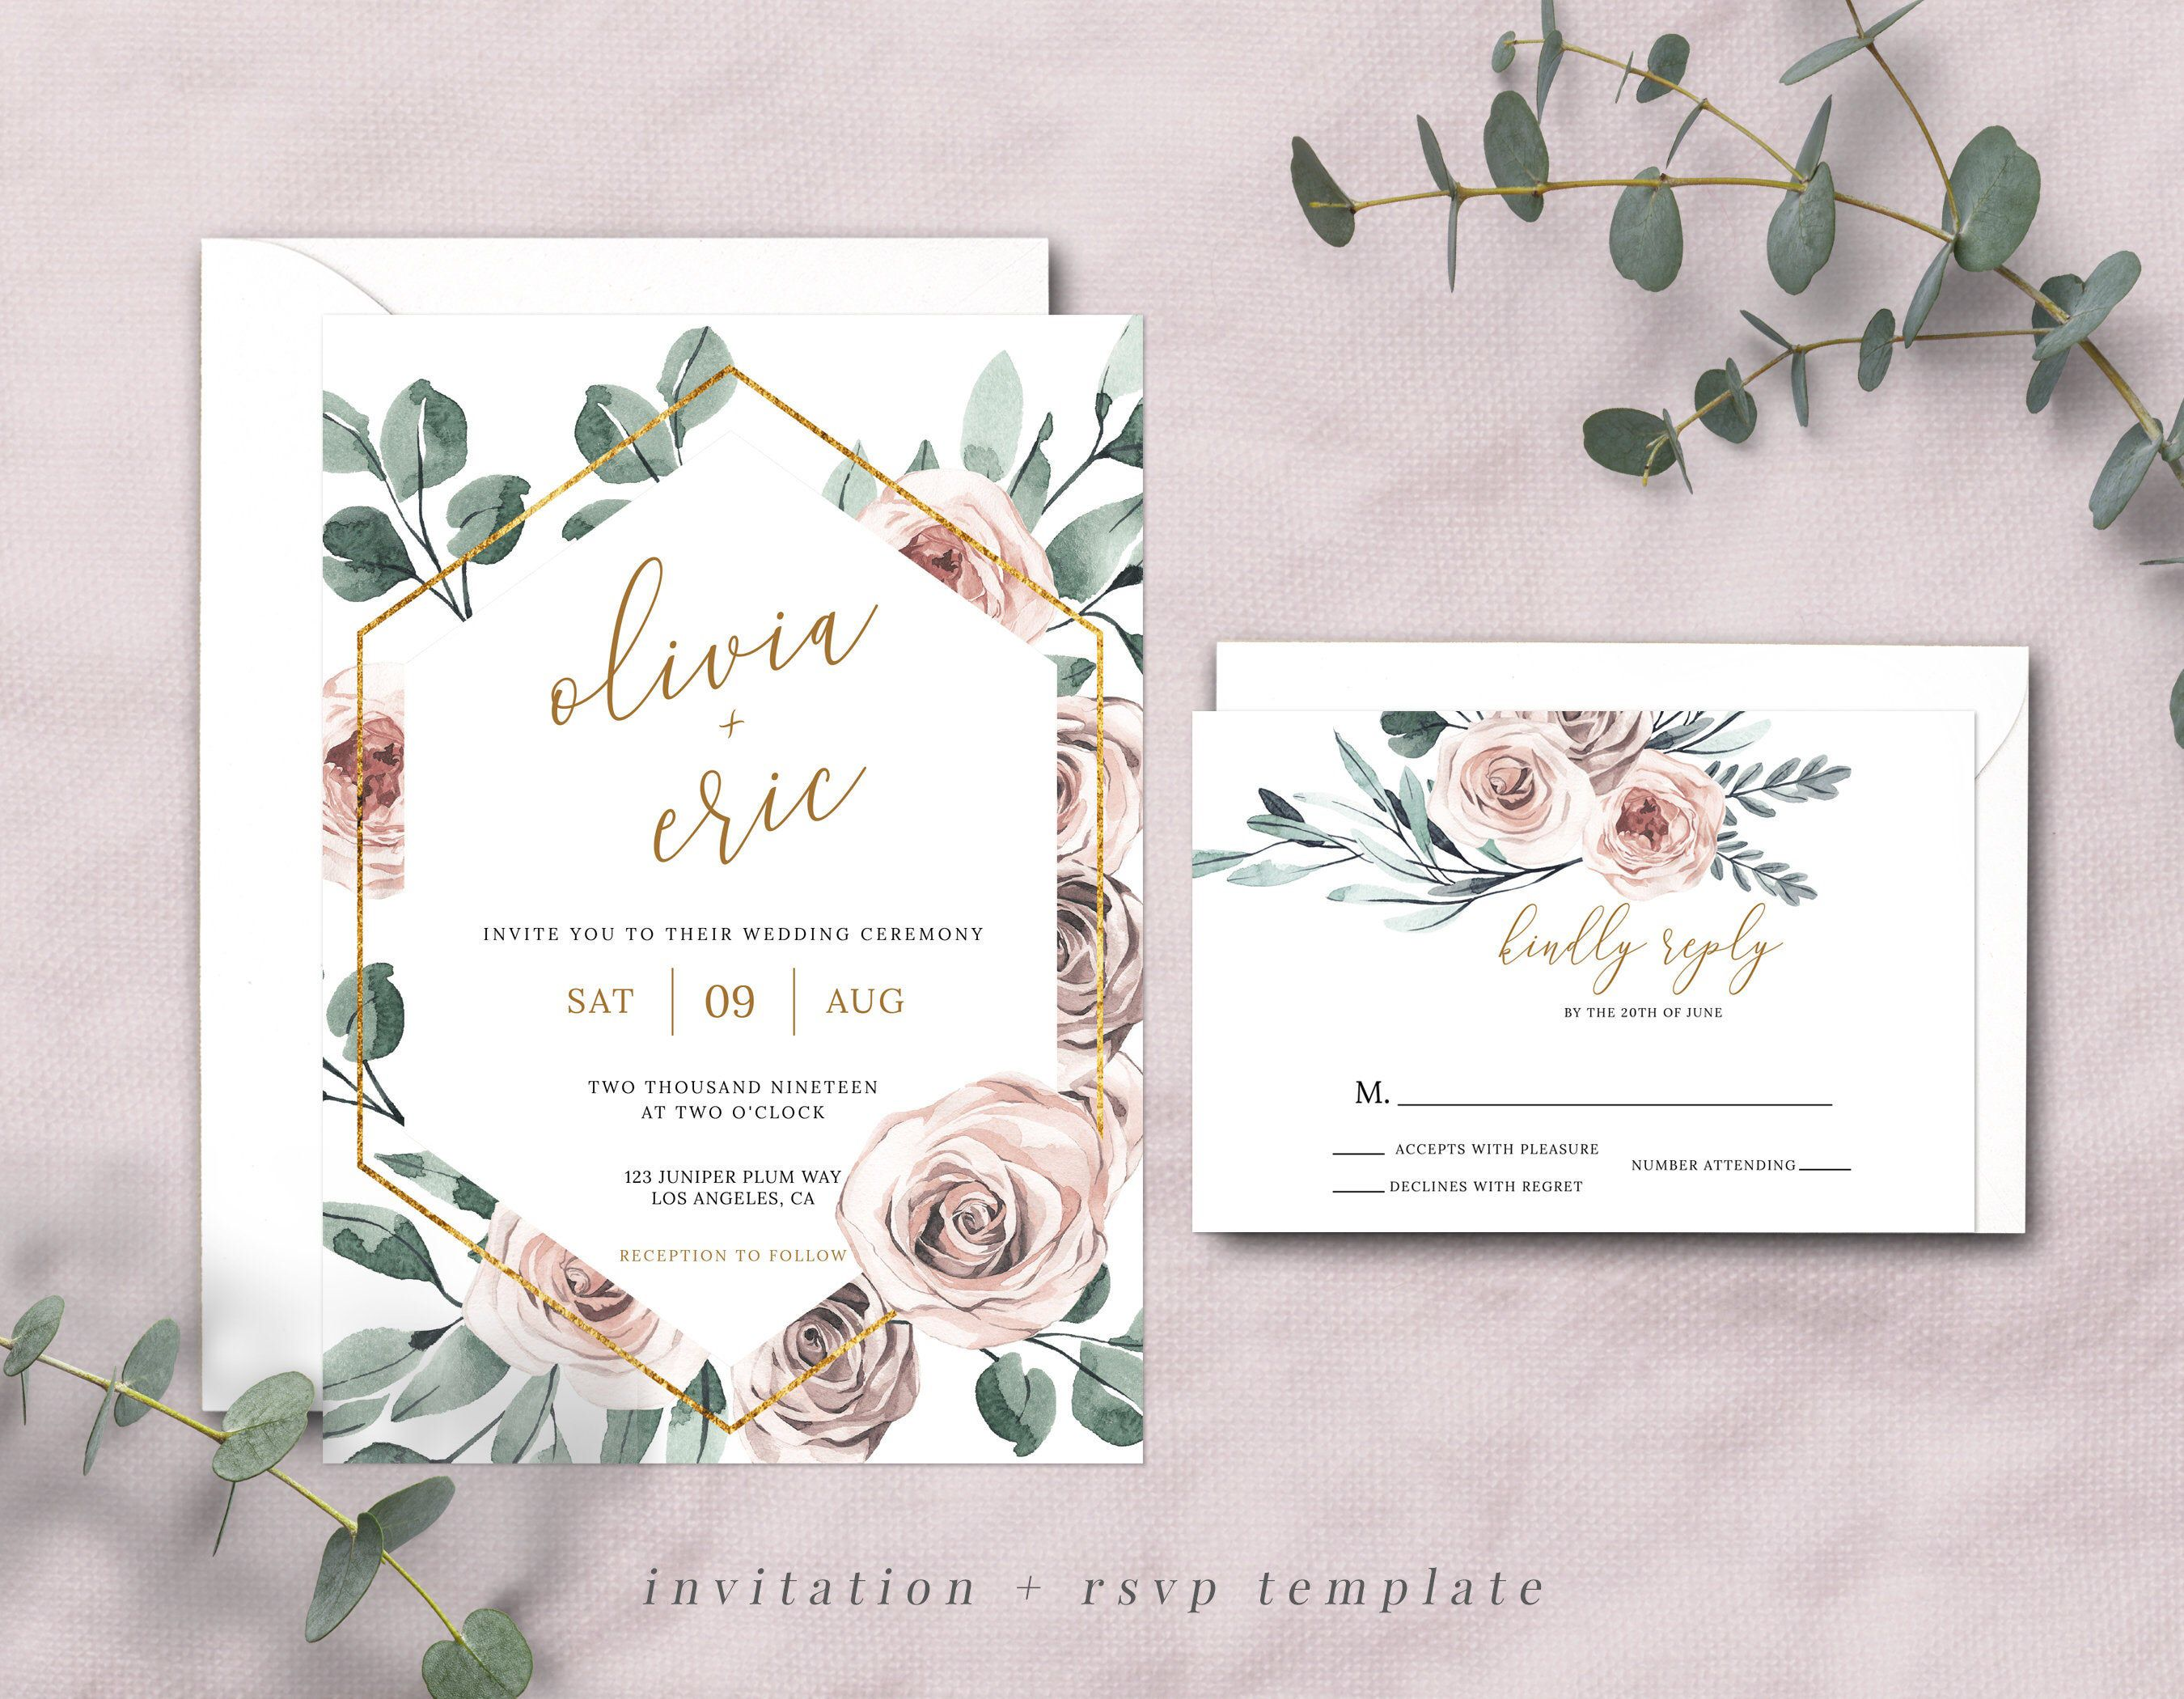 Boho Rose Wedding Invitation Set Template Rose Wedding Etsy Rose Wedding Invitations Wedding Invitations Wedding Invitation Sets